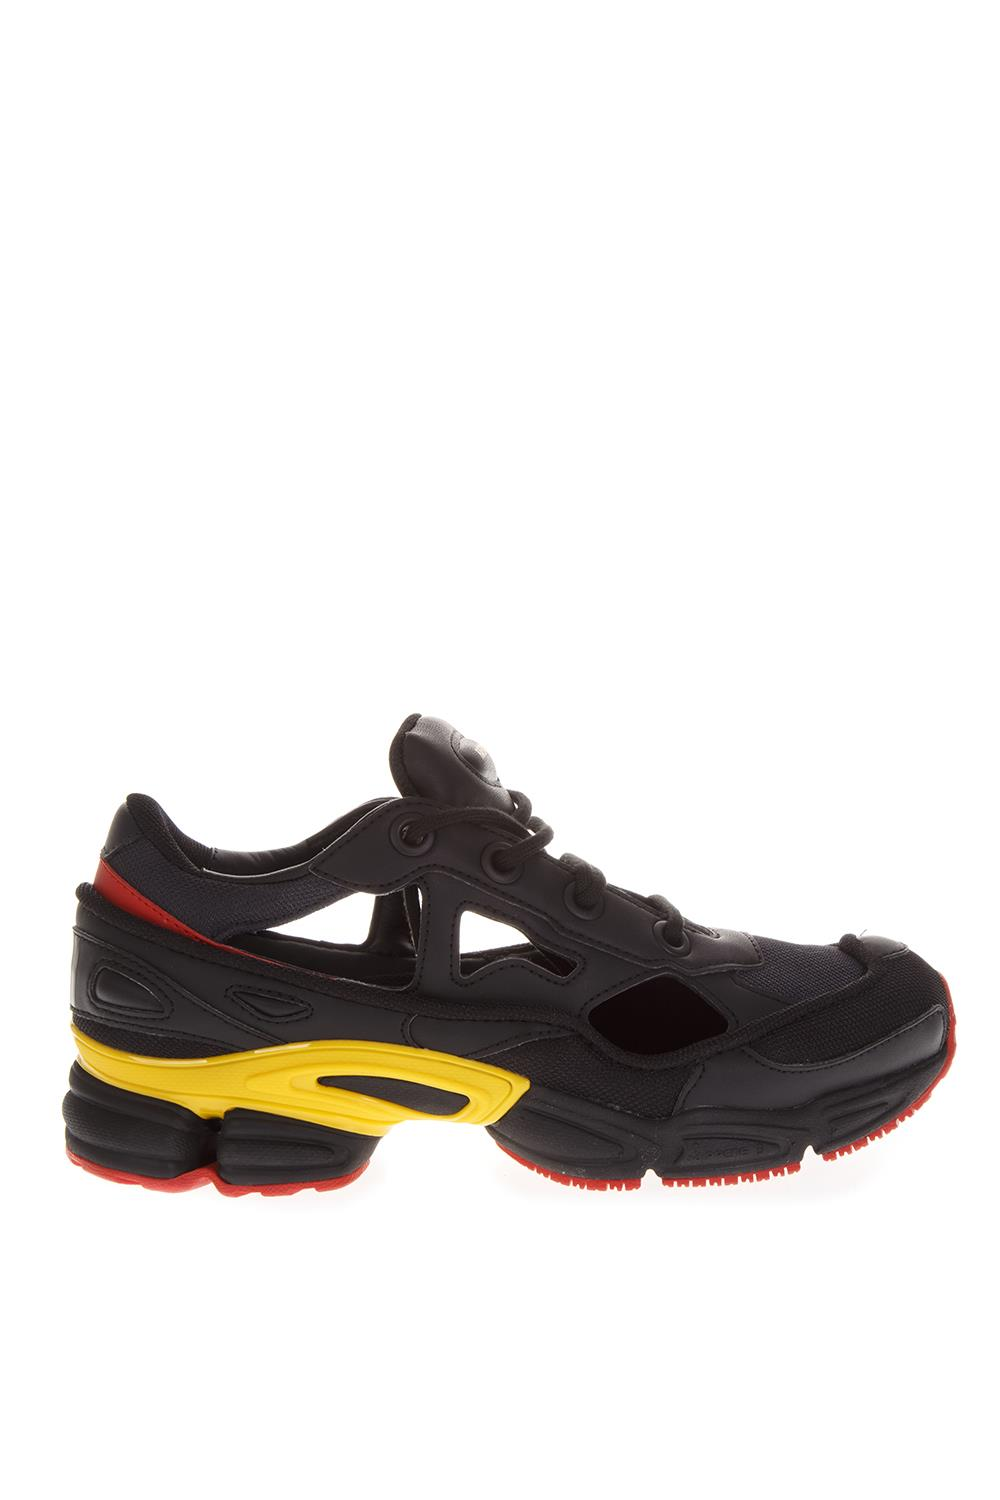 online store ae8a6 00858 BLACK REPLICANT OZWEEGO SNEAKERS BY RAF SIMONS FW 2018